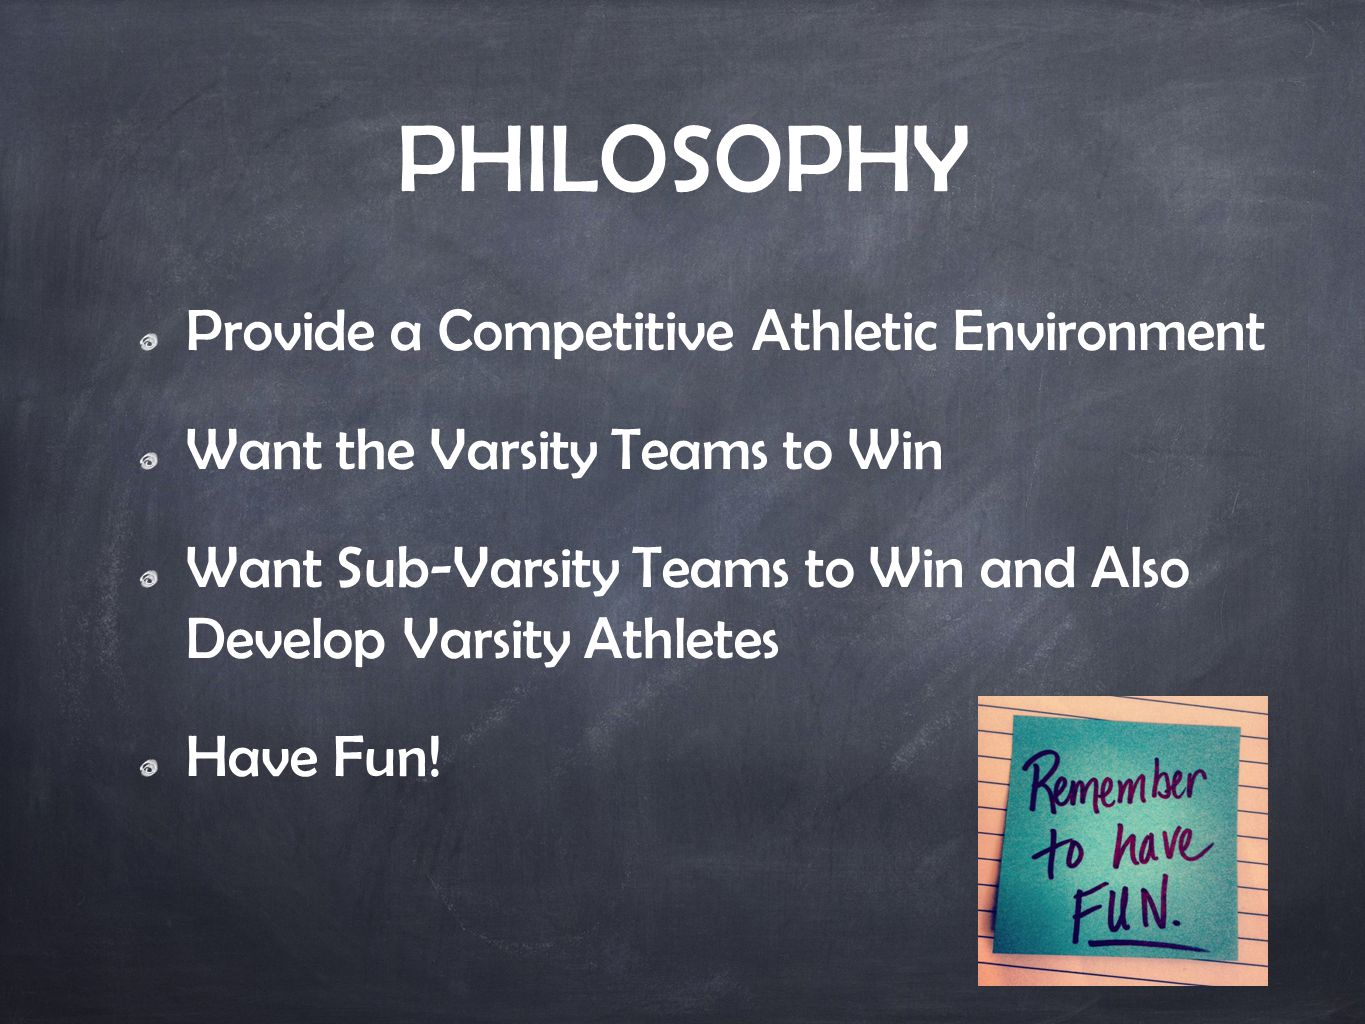 PHILOSOPHY Provide a Competitive Athletic Environment Want the Varsity Teams to Win Want Sub-Varsity Teams to Win and Also Develop Varsity Athletes Have Fun!